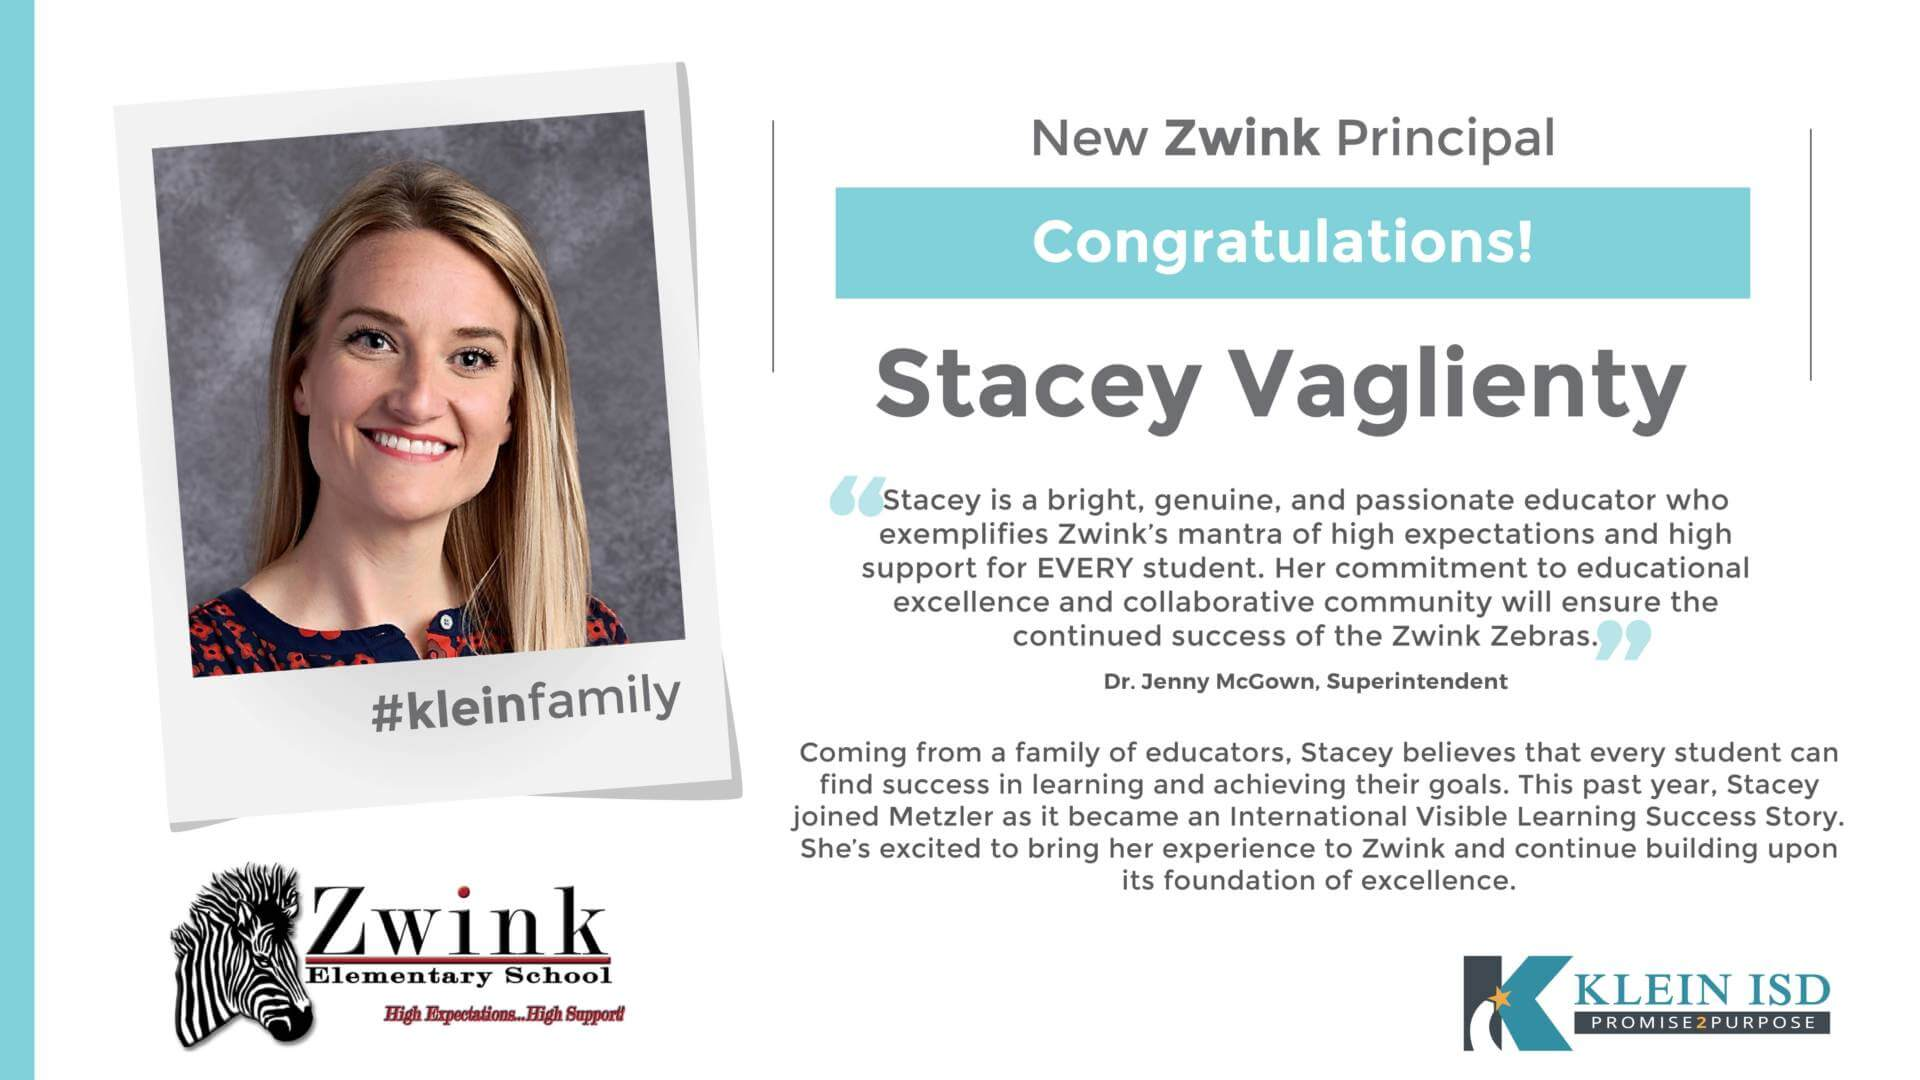 Stacey Vaglienty Announced as Zwink Elementary Principal